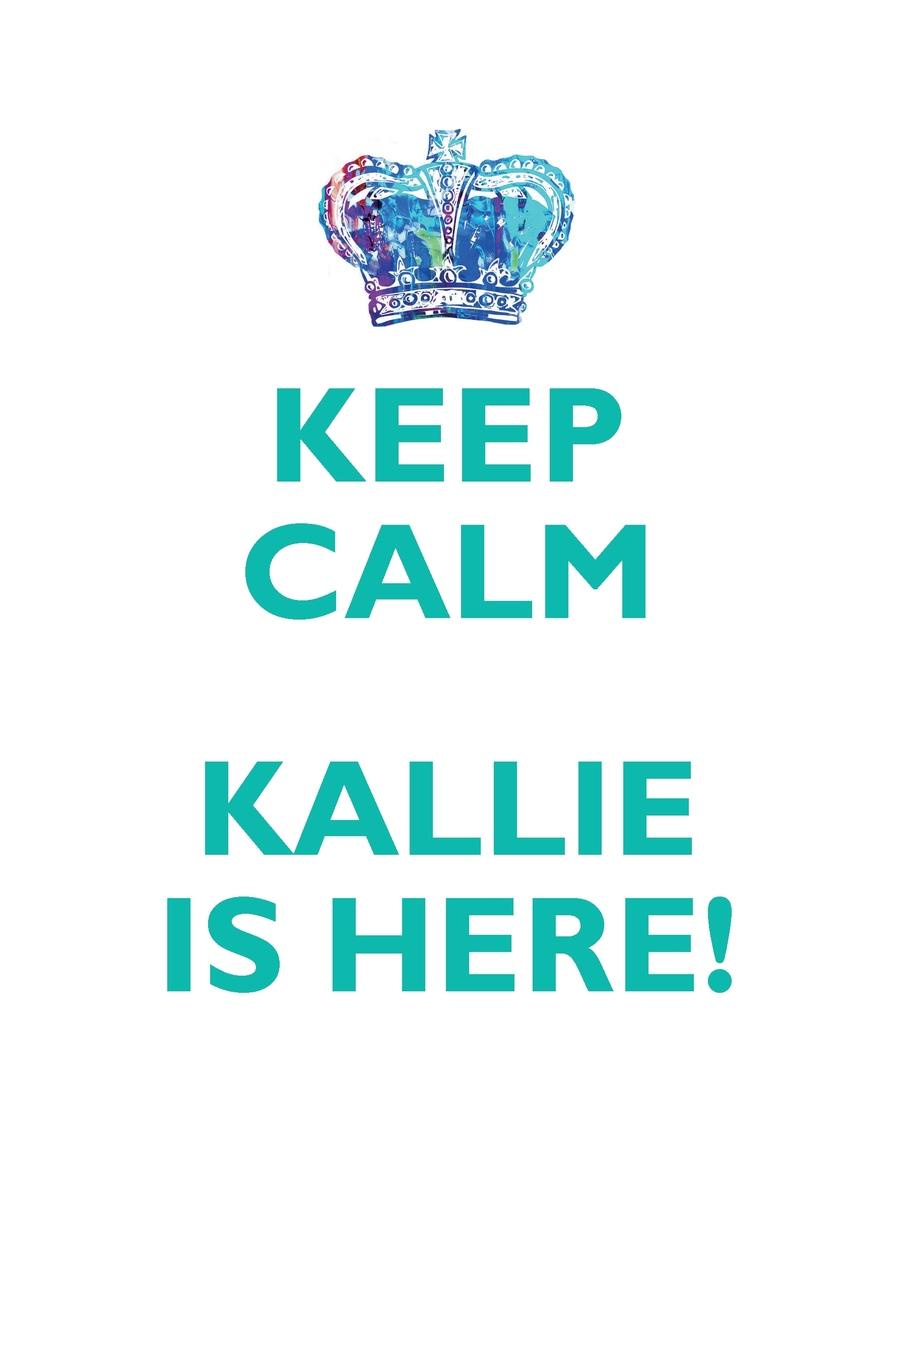 """KEEP CALM, KALLIE IS HERE AFFIRMATIONS WORKBOOK Positive Affirmations Workbook Includes. Mentoring Questions, Guidance, Supporting You """"Do you want an interactive workbook that will help you..."""